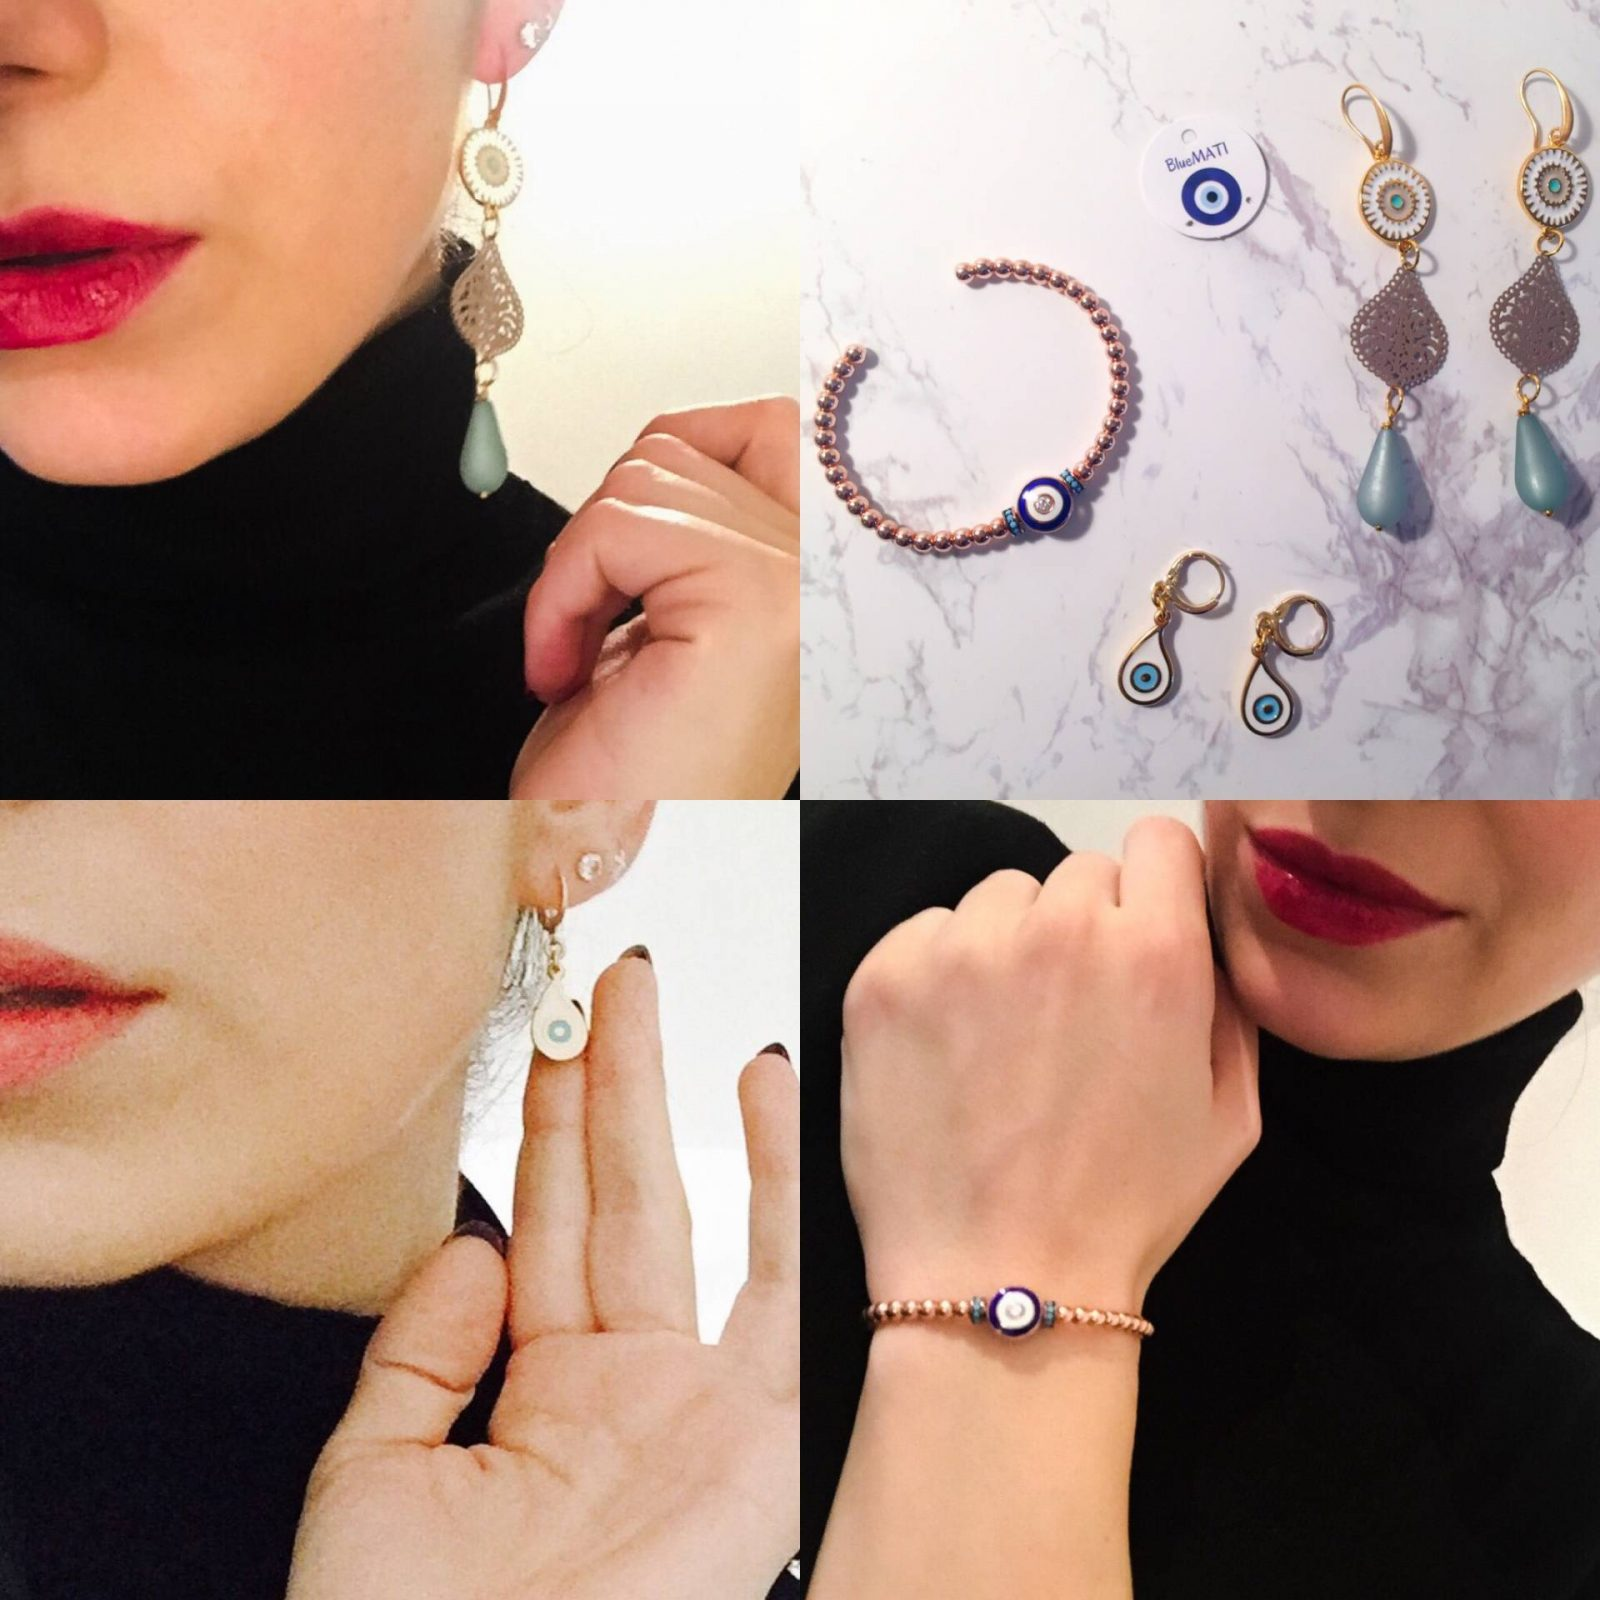 BlueMati jewellery